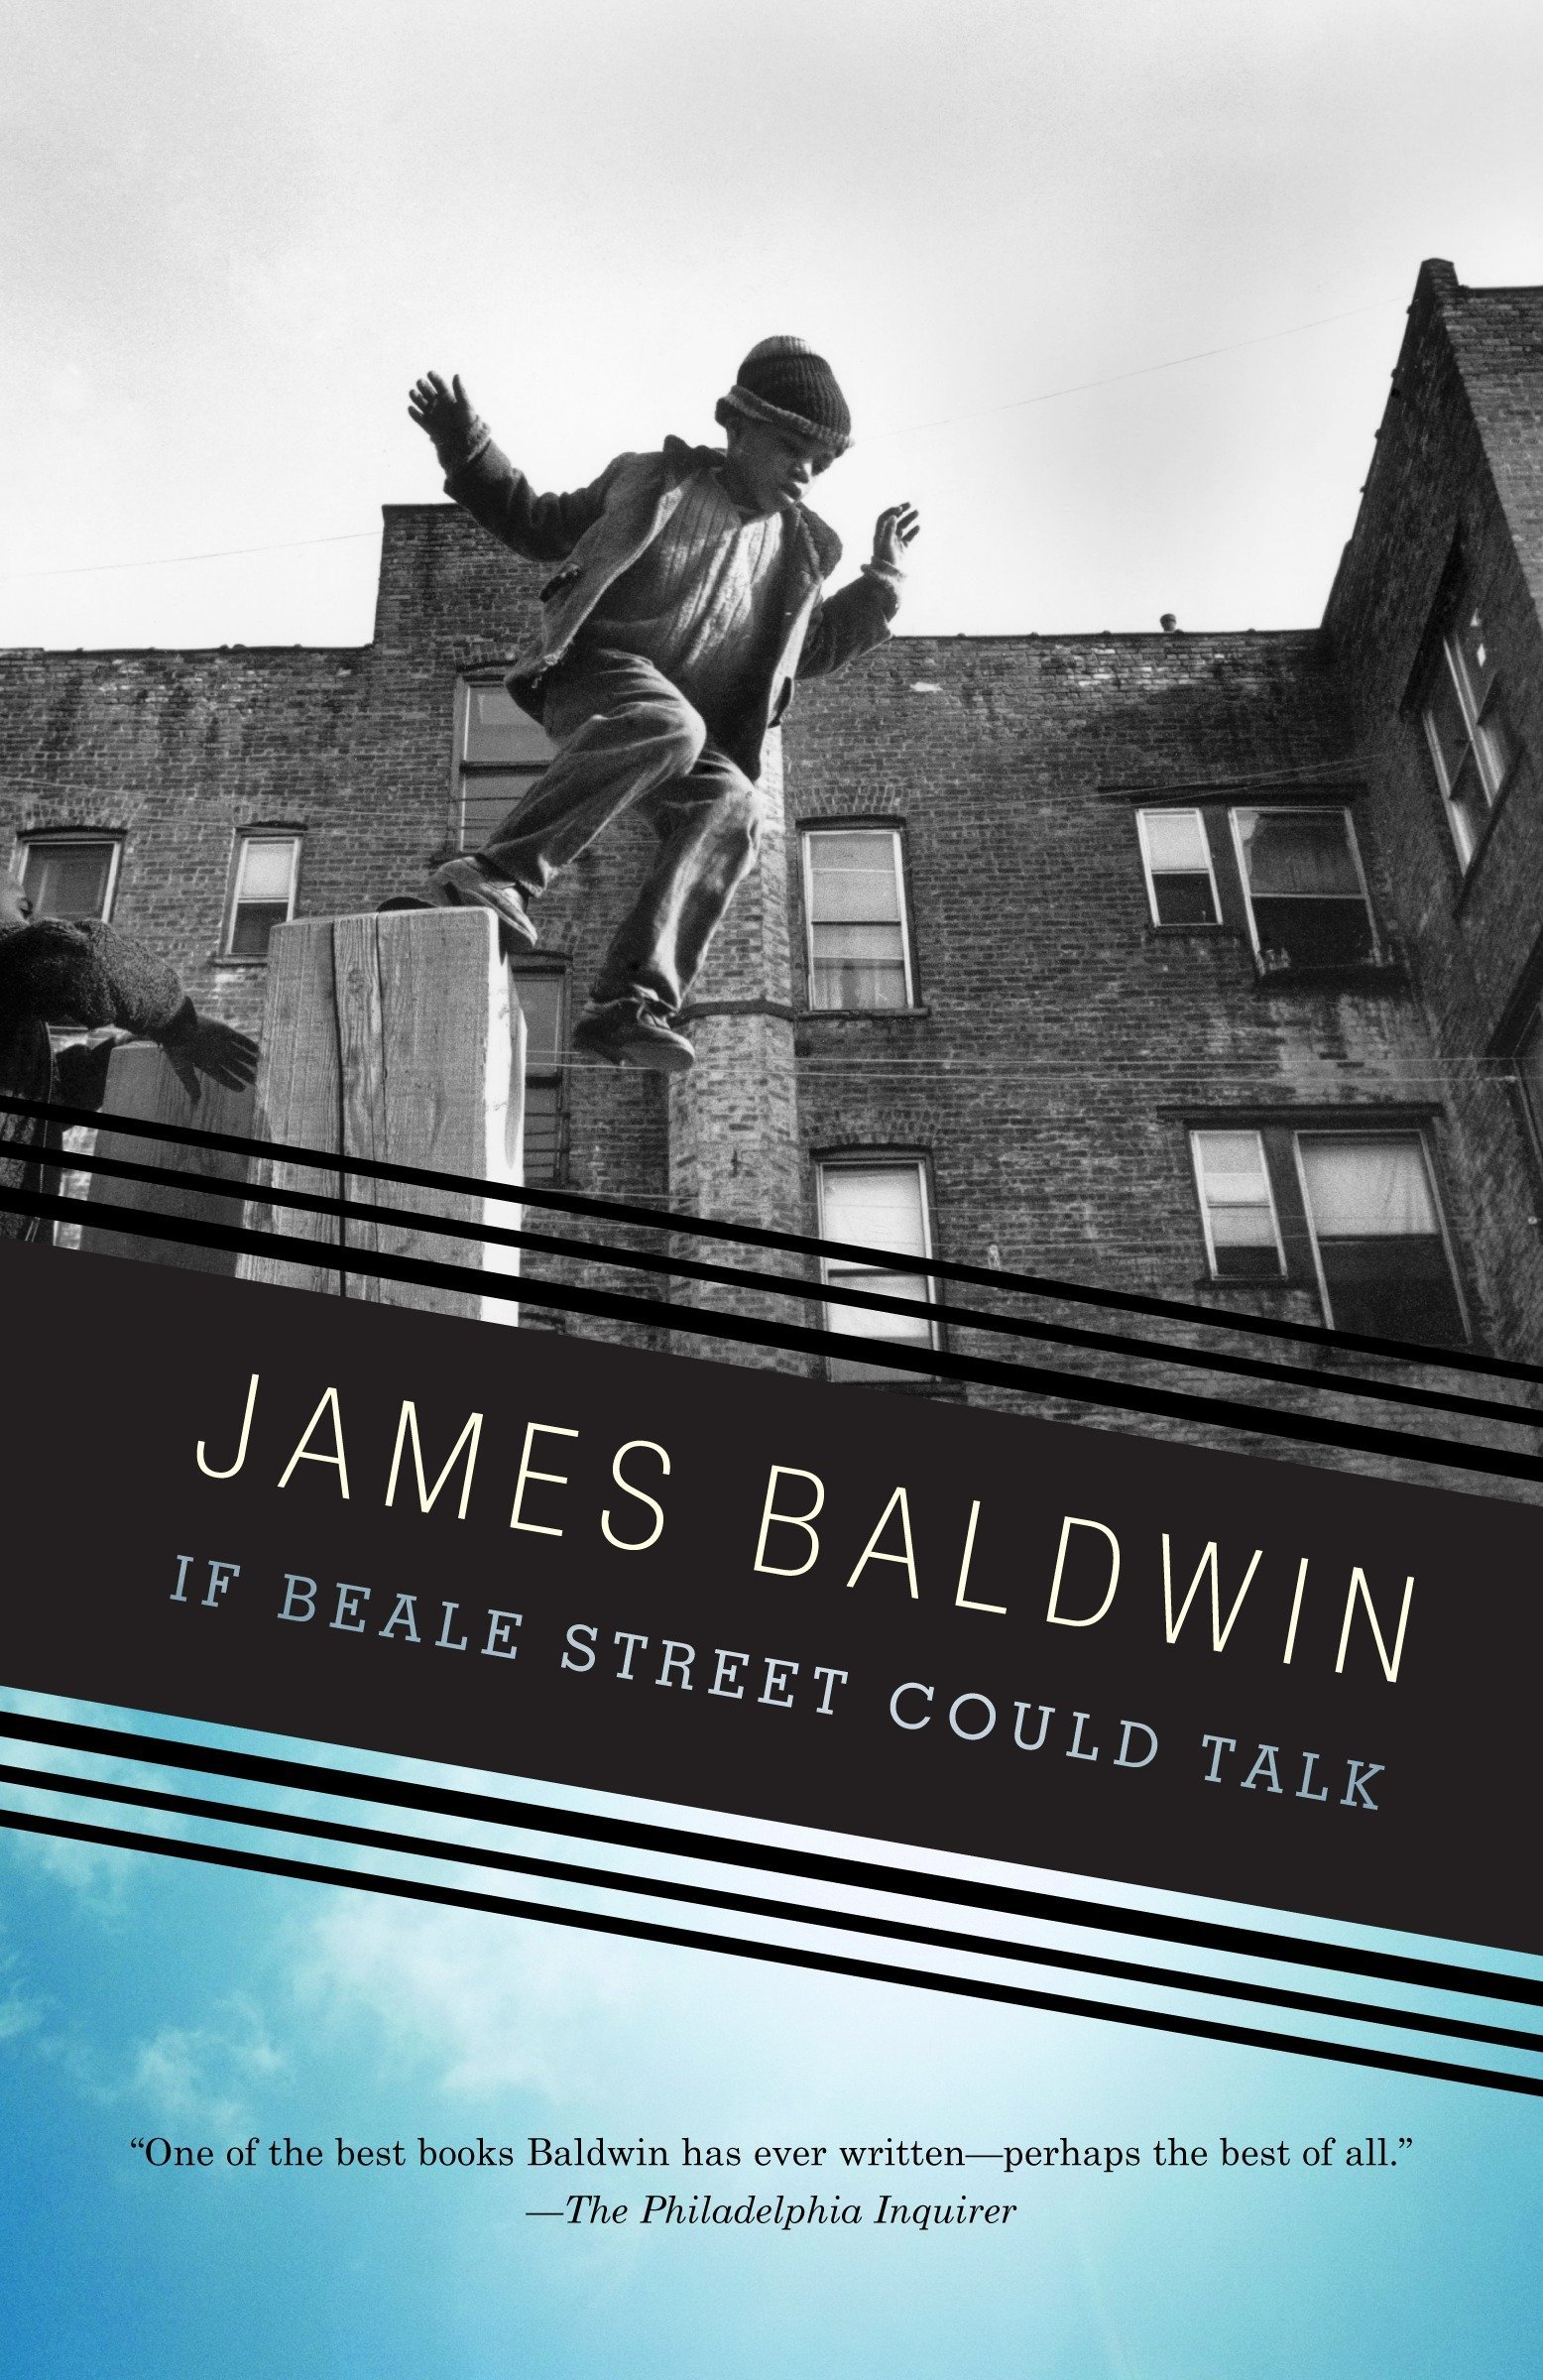 amazon com if beale street could talk 9780307275936 james